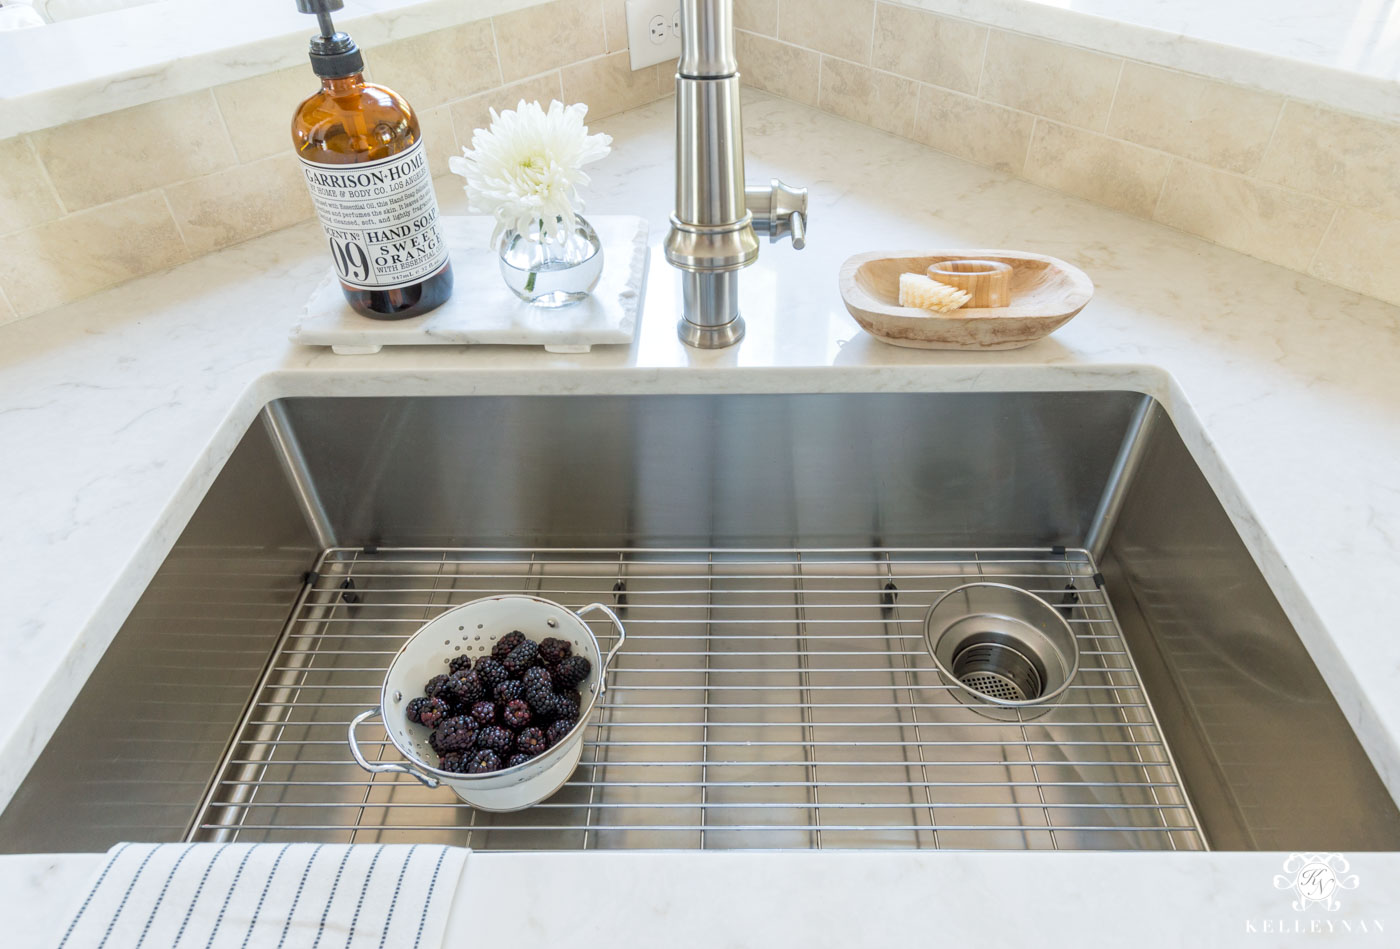 How to update your kitchen sink